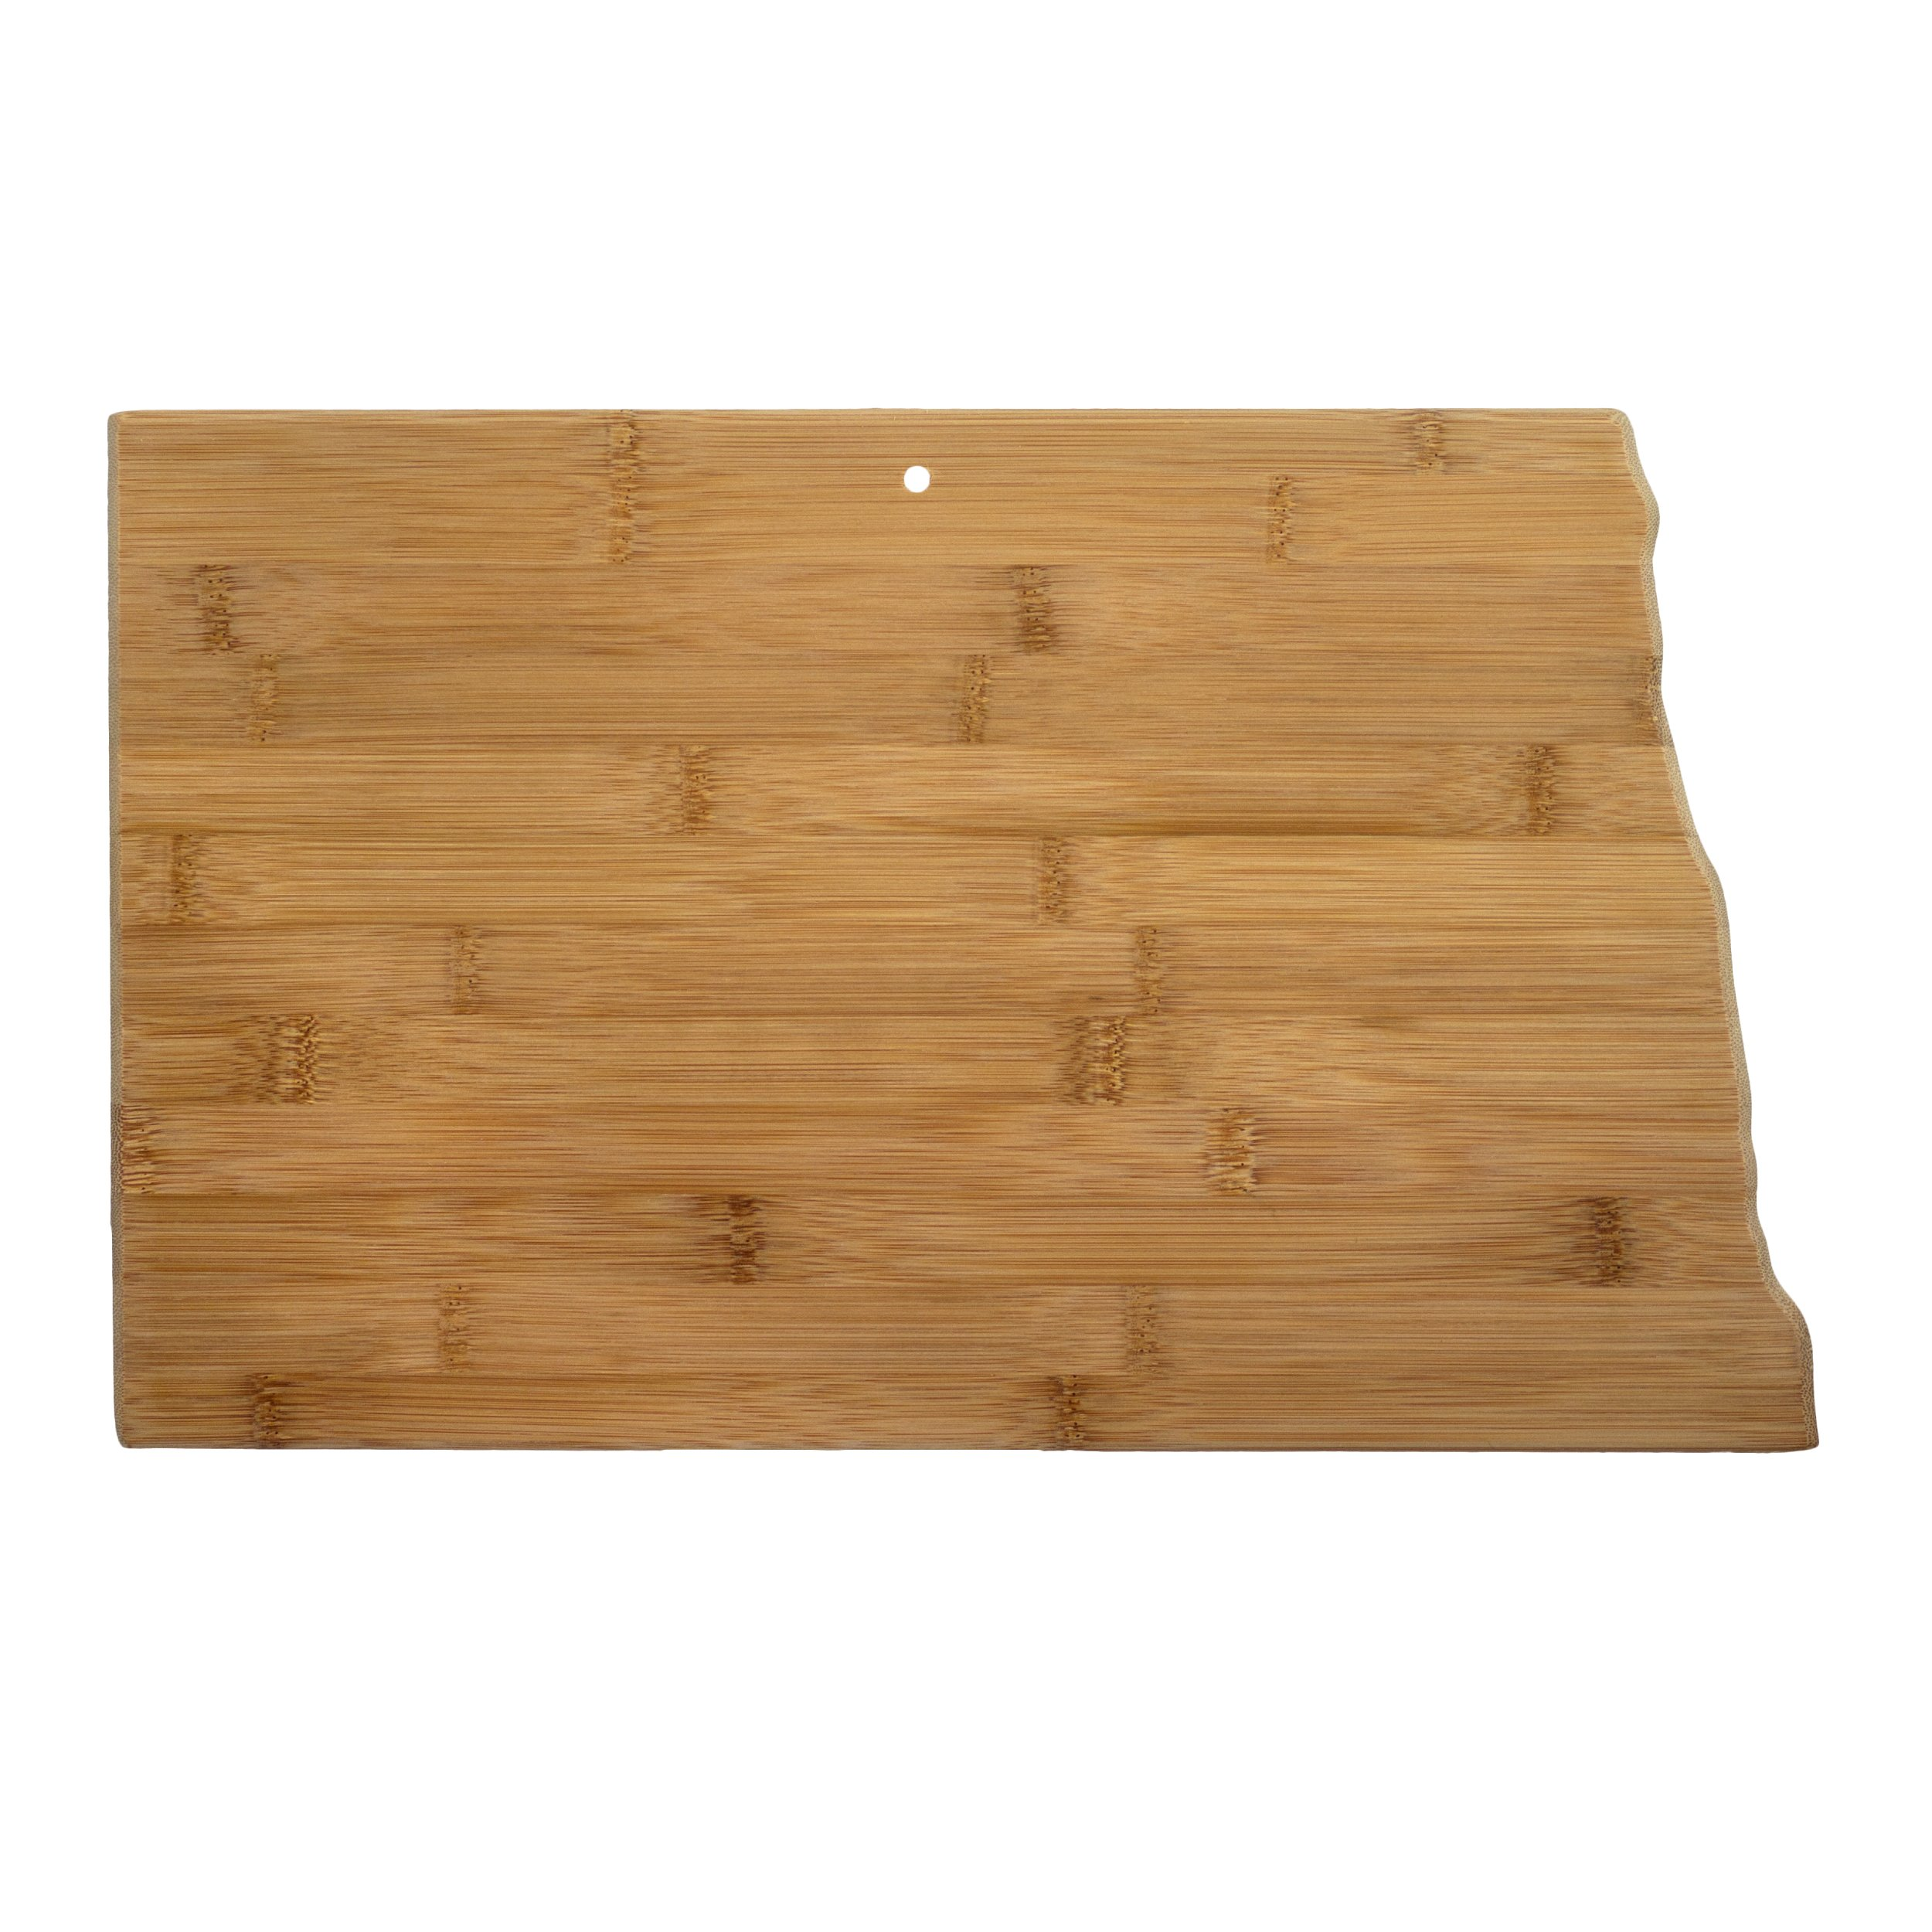 Totally Bamboo State Cutting & Serving Board, North Dakota, 100% Bamboo Board for Cooking and Entertaining